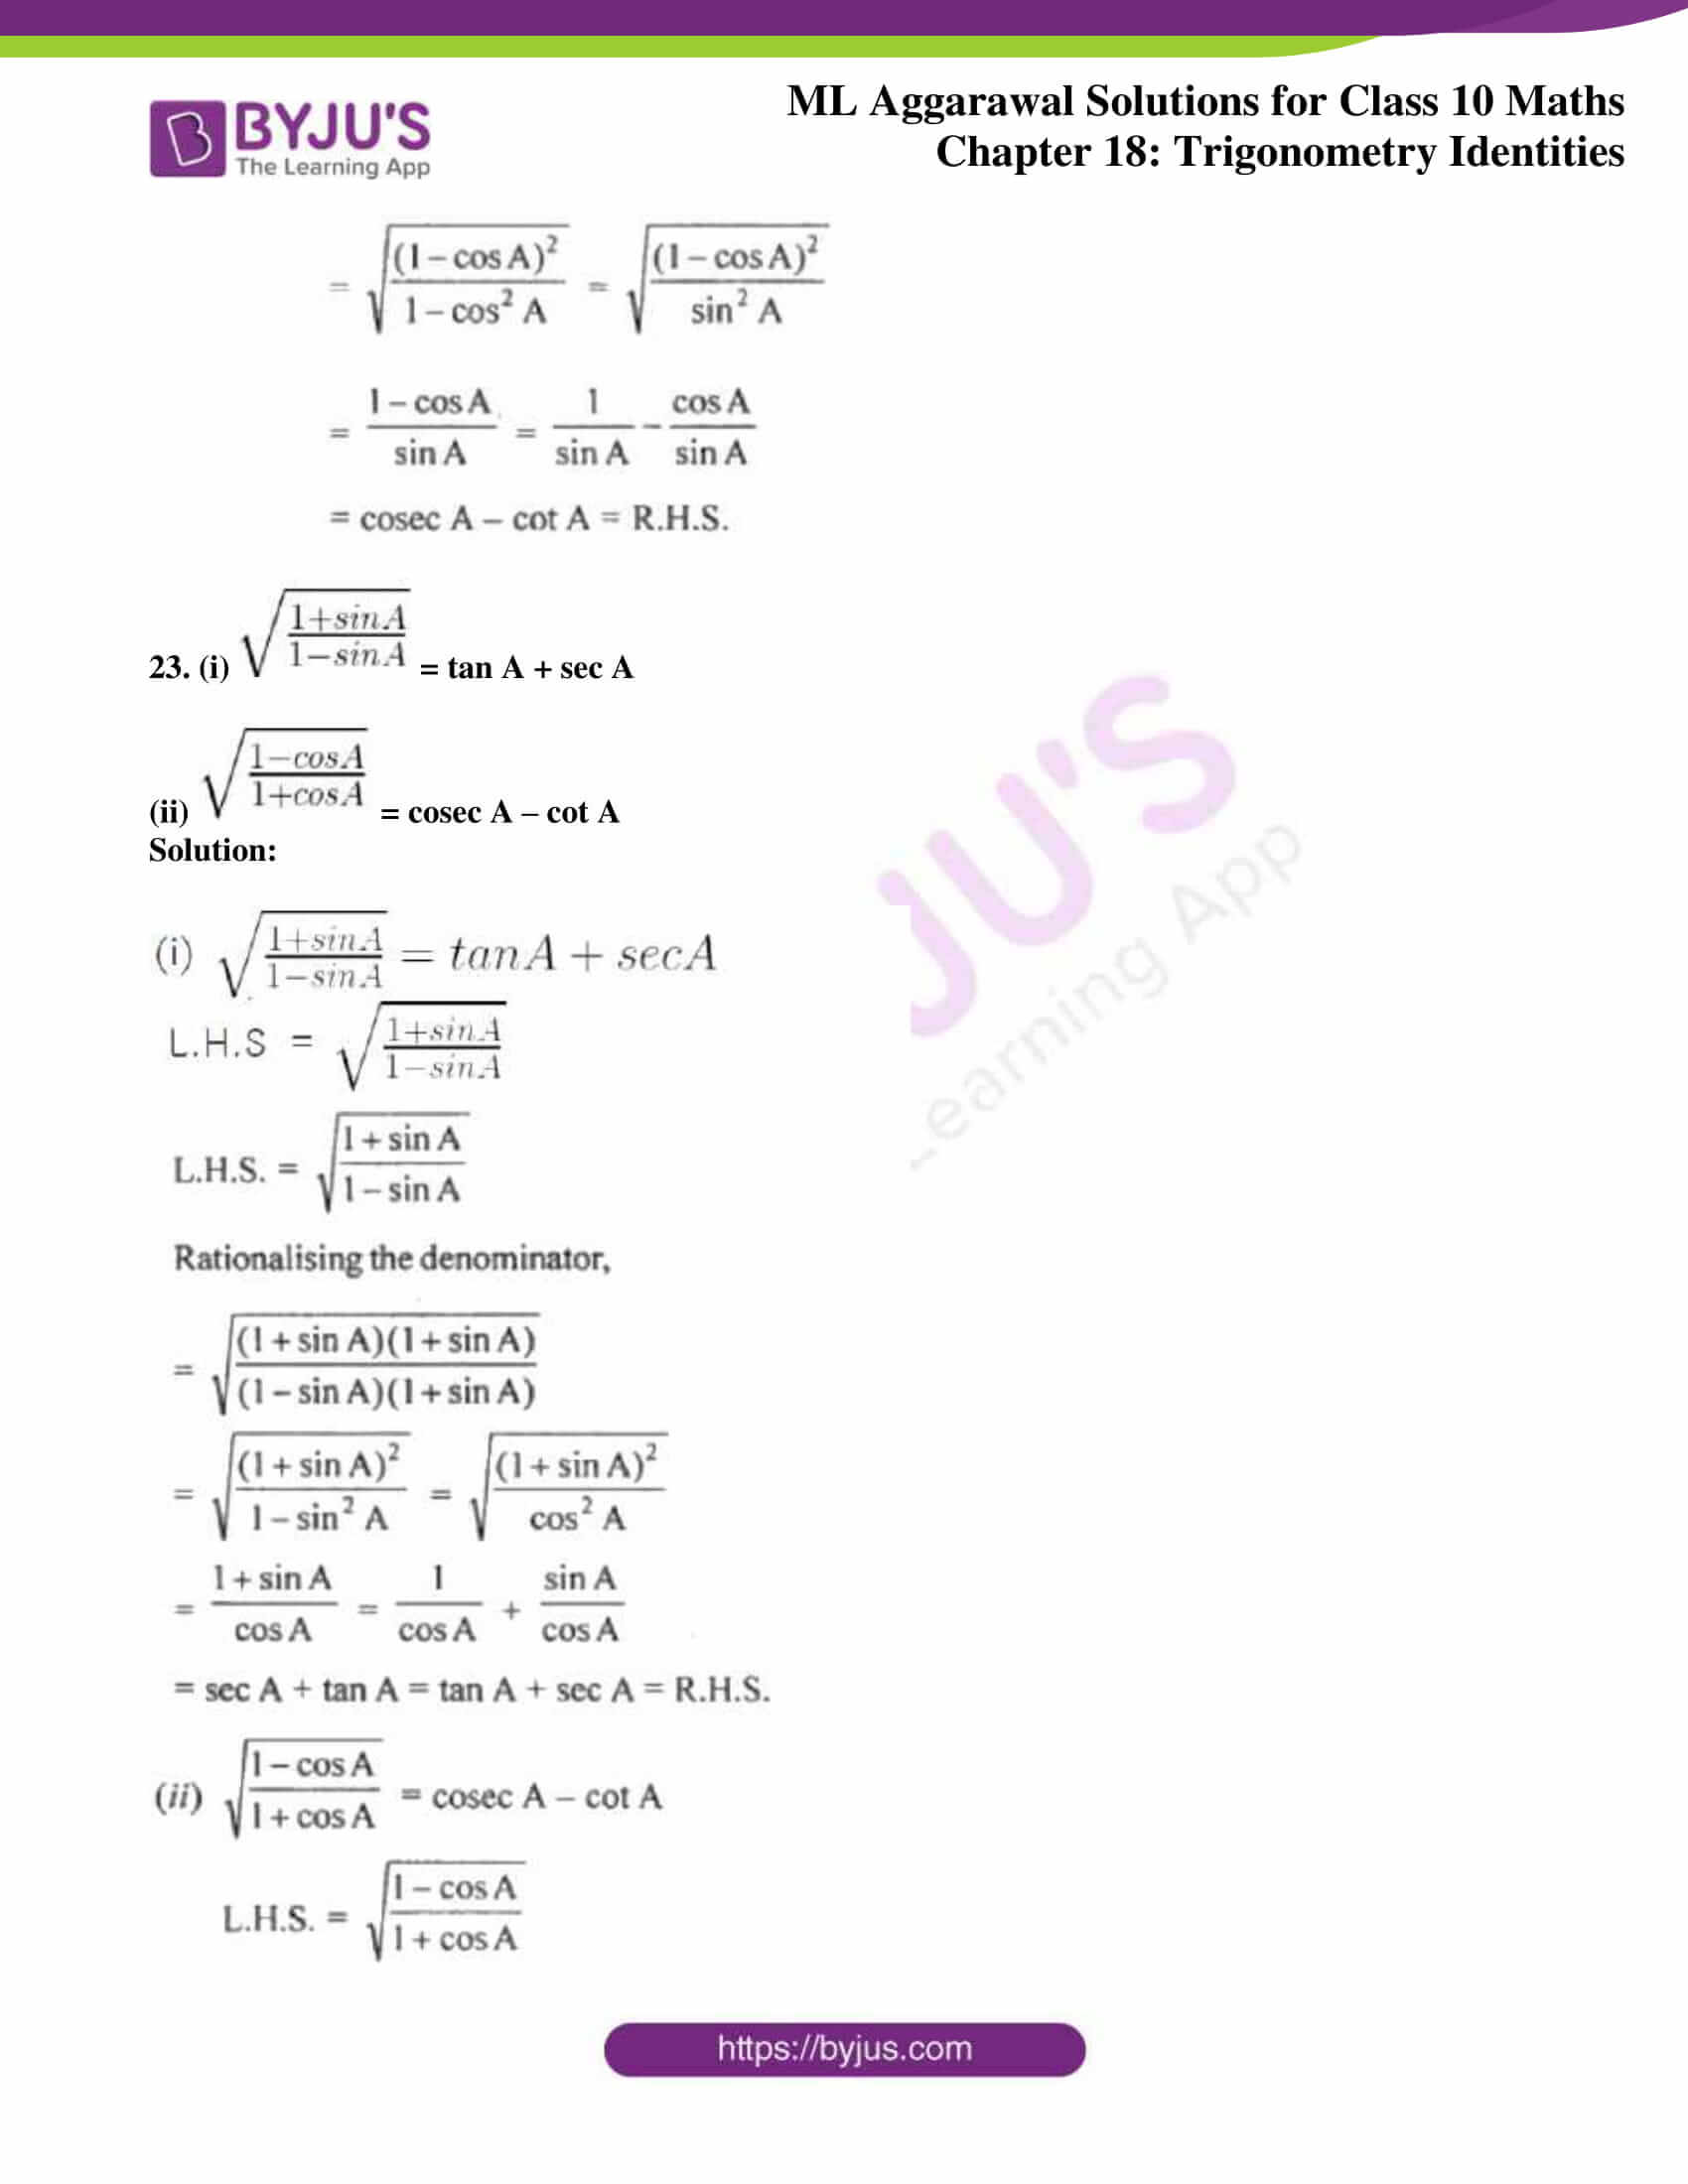 ml aggarwal solutions for class 10 maths chapter 18 16